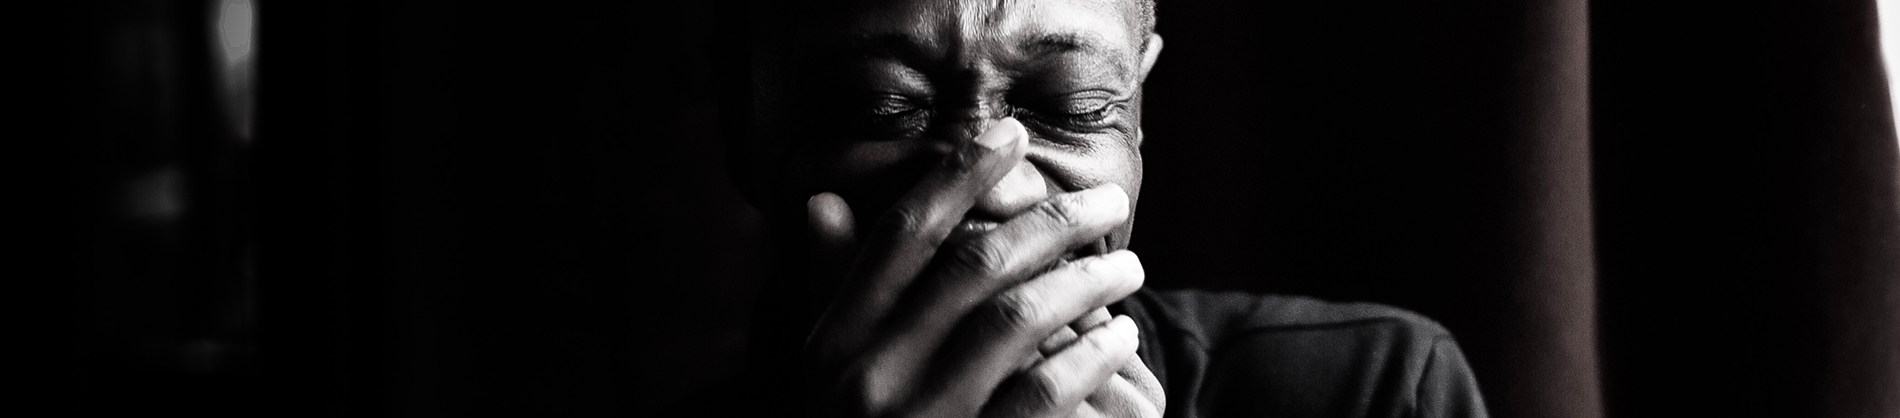 A black and white photo of a man crying